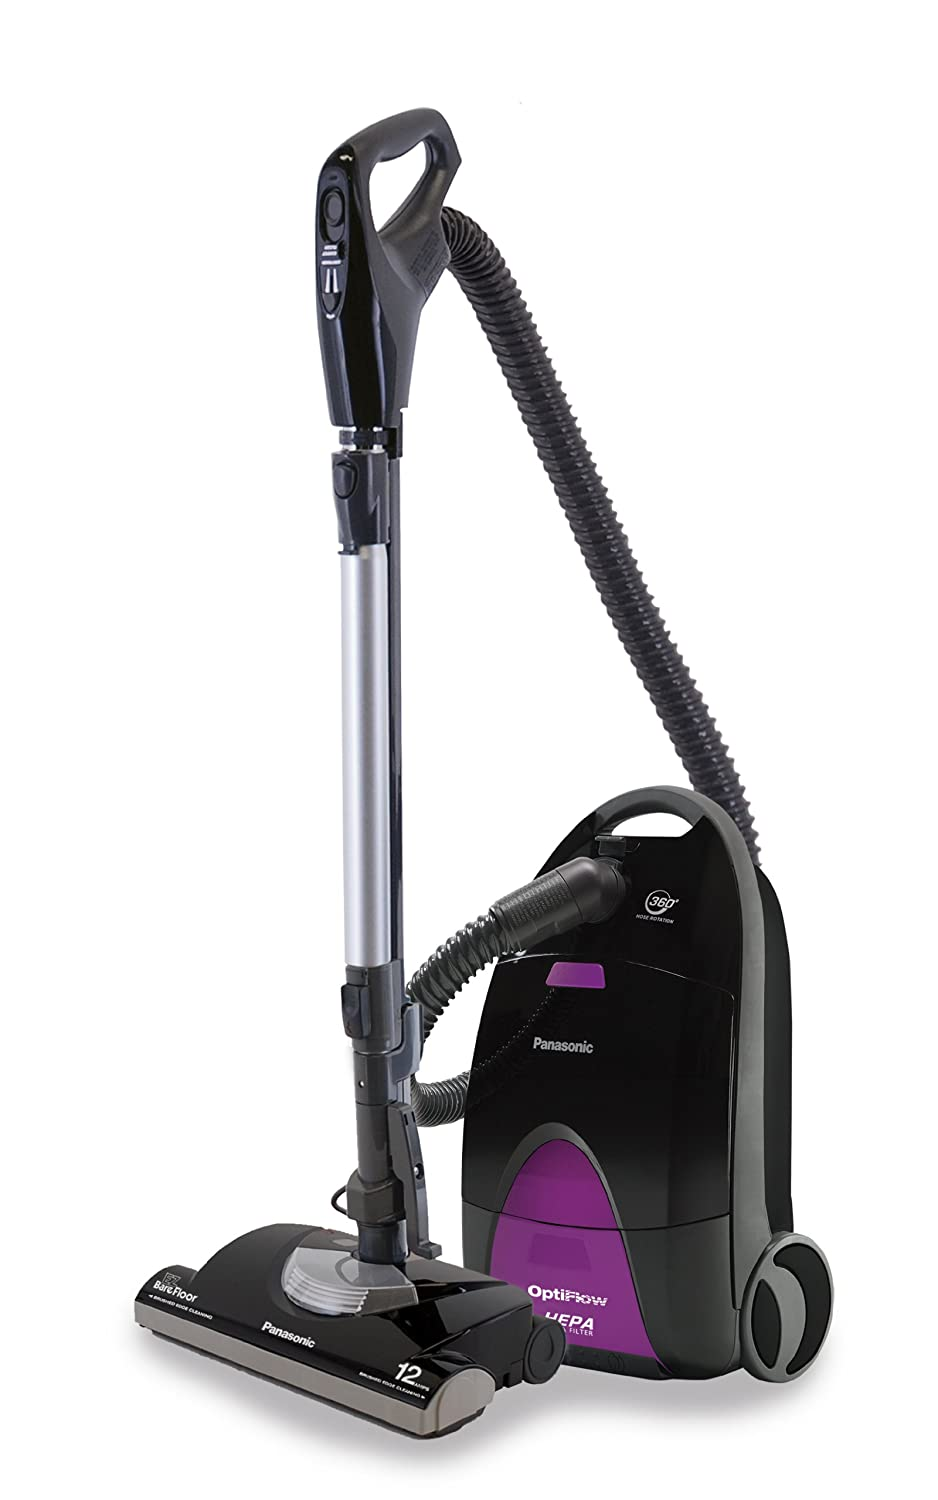 Top 10 Best Canister Vacuum Cleaner (2020 Reviews & Buying Guide) 8